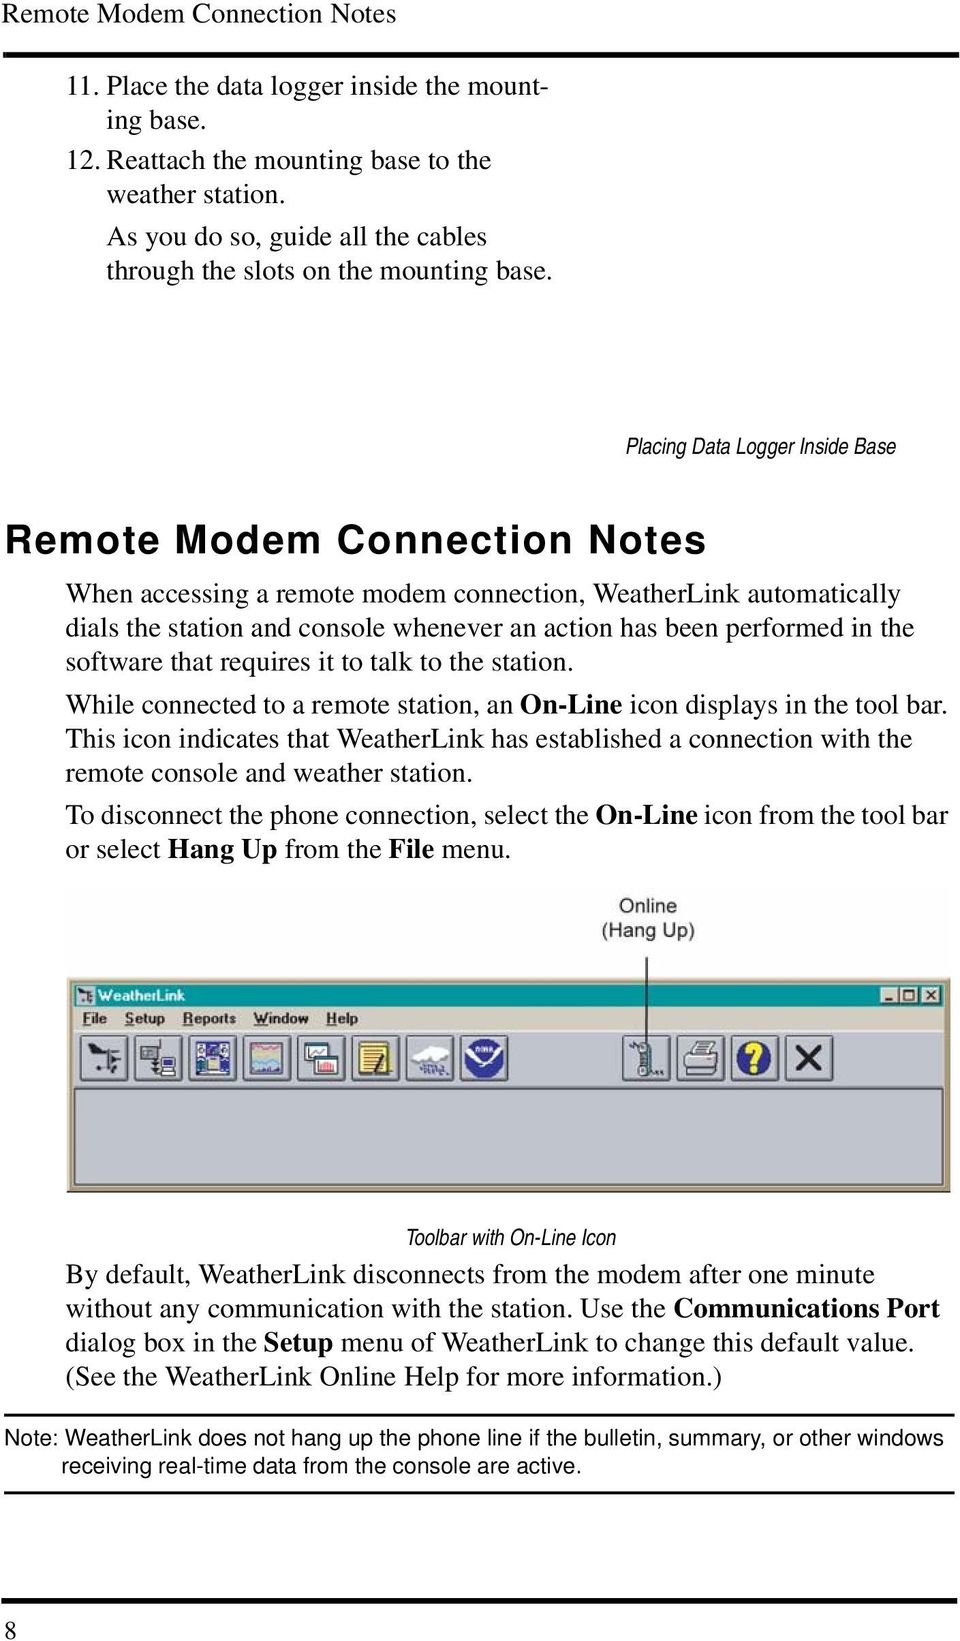 Placing Data Logger Inside Base Remote Modem Connection Notes When accessing a remote modem connection, WeatherLink automatically dials the station and console whenever an action has been performed